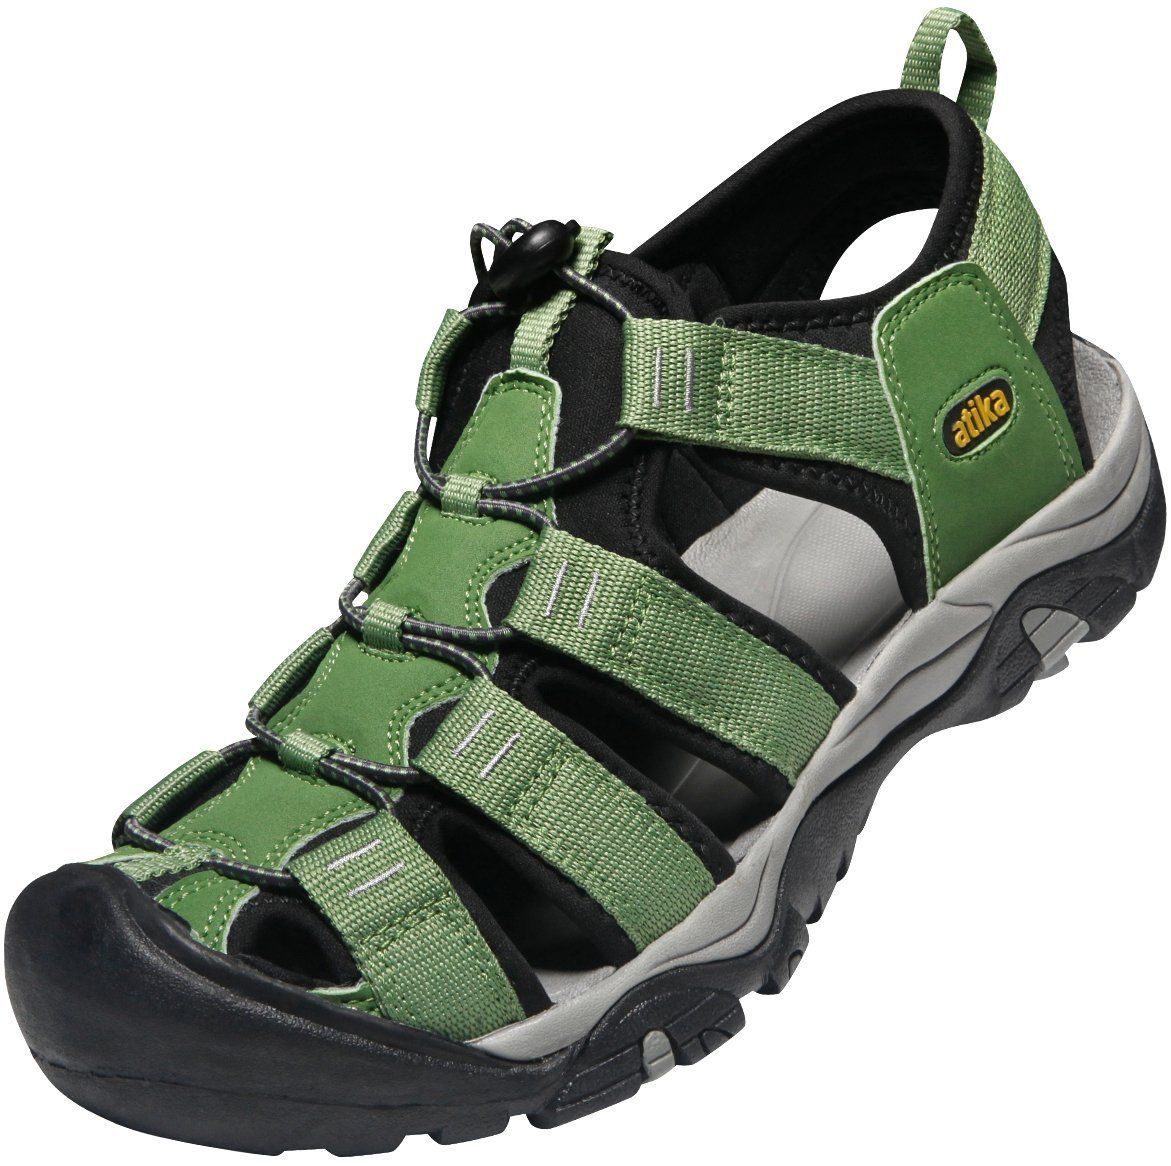 6ffdf2f28678 Atika Men s Sport Sandals Maya Trail Outdoor Water Shoes M110    For more  information